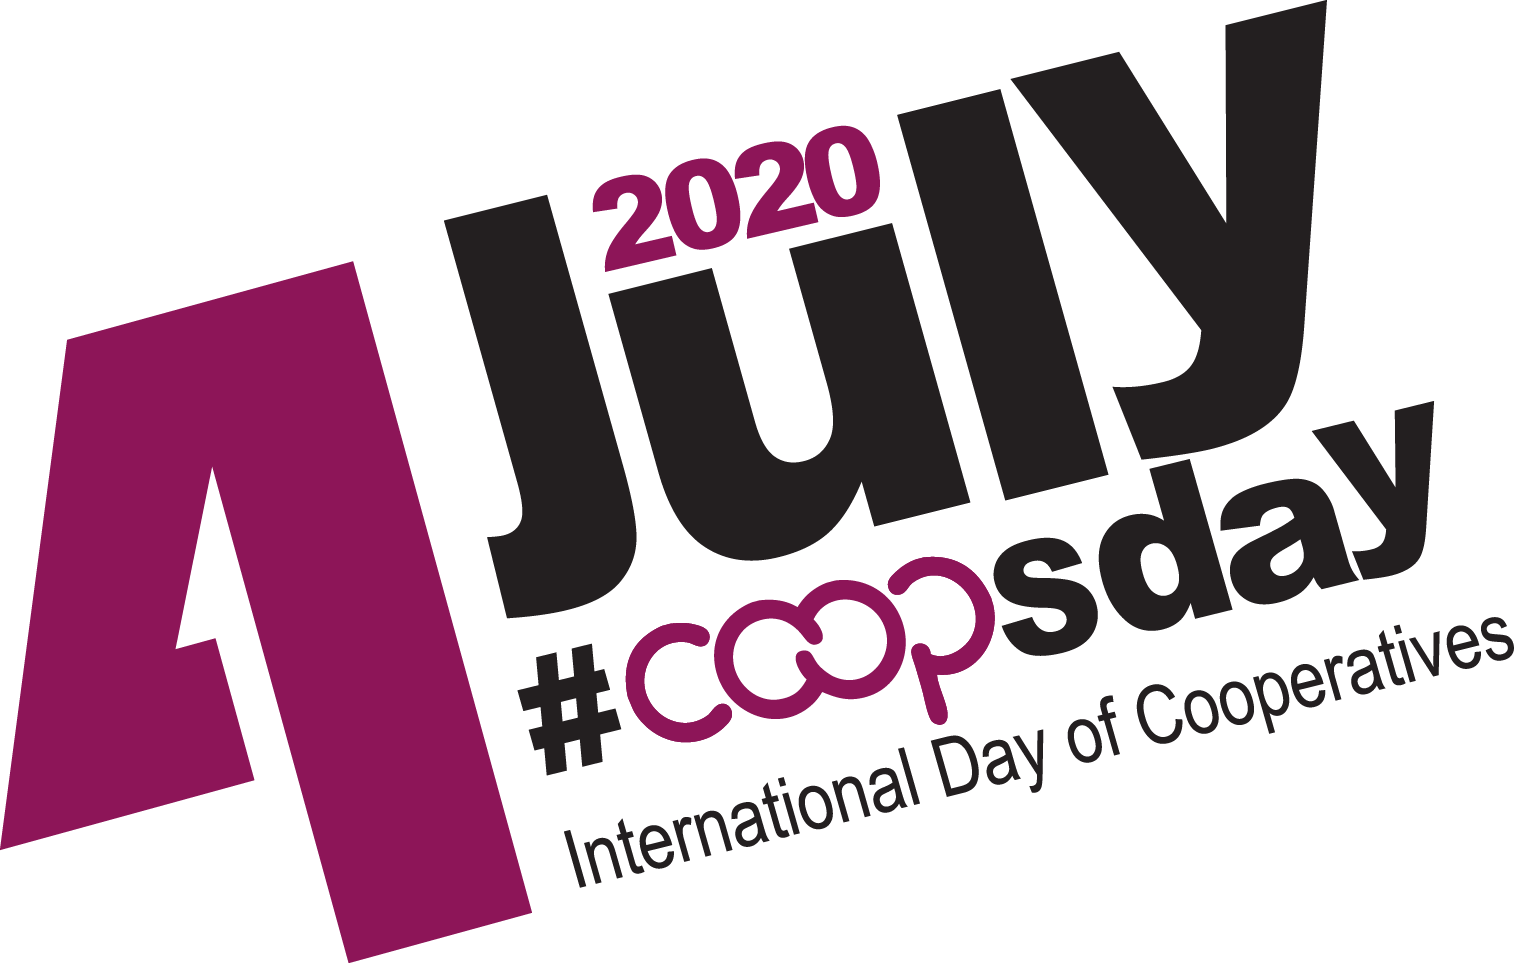 CoopsDay 2020